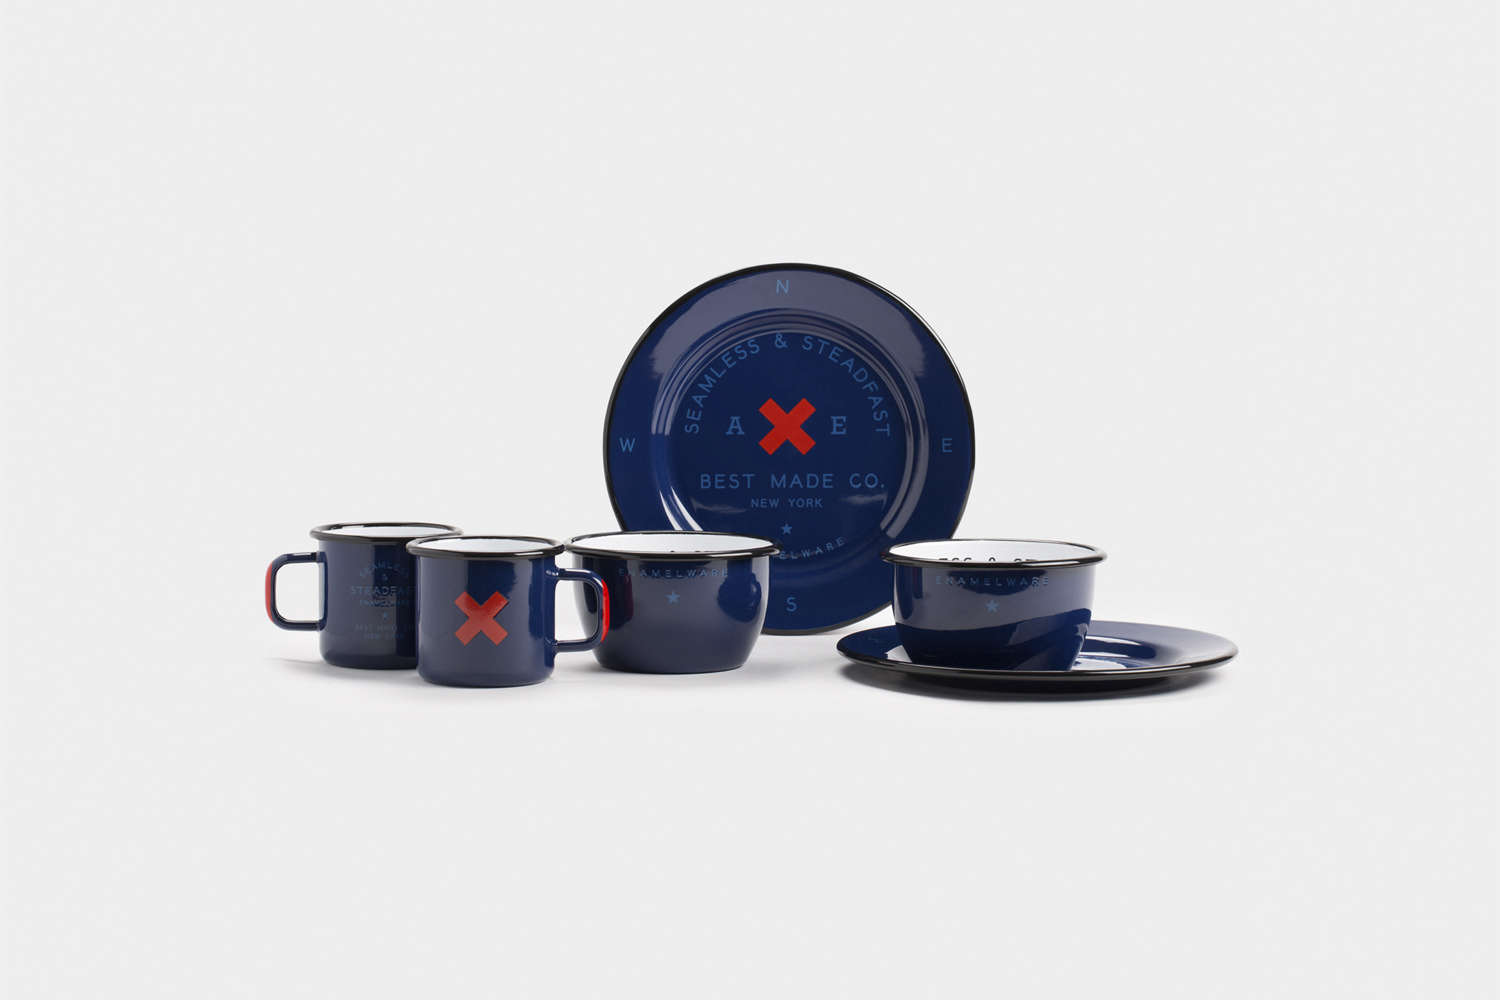 Steal This Look A Stylish Camp Kitchen in a Plywood Summer Cabin The Seamless & Steadfast Enamel Gift Set, shown in navy blue, from Best Made is \$98 for two place setting at Best Made.